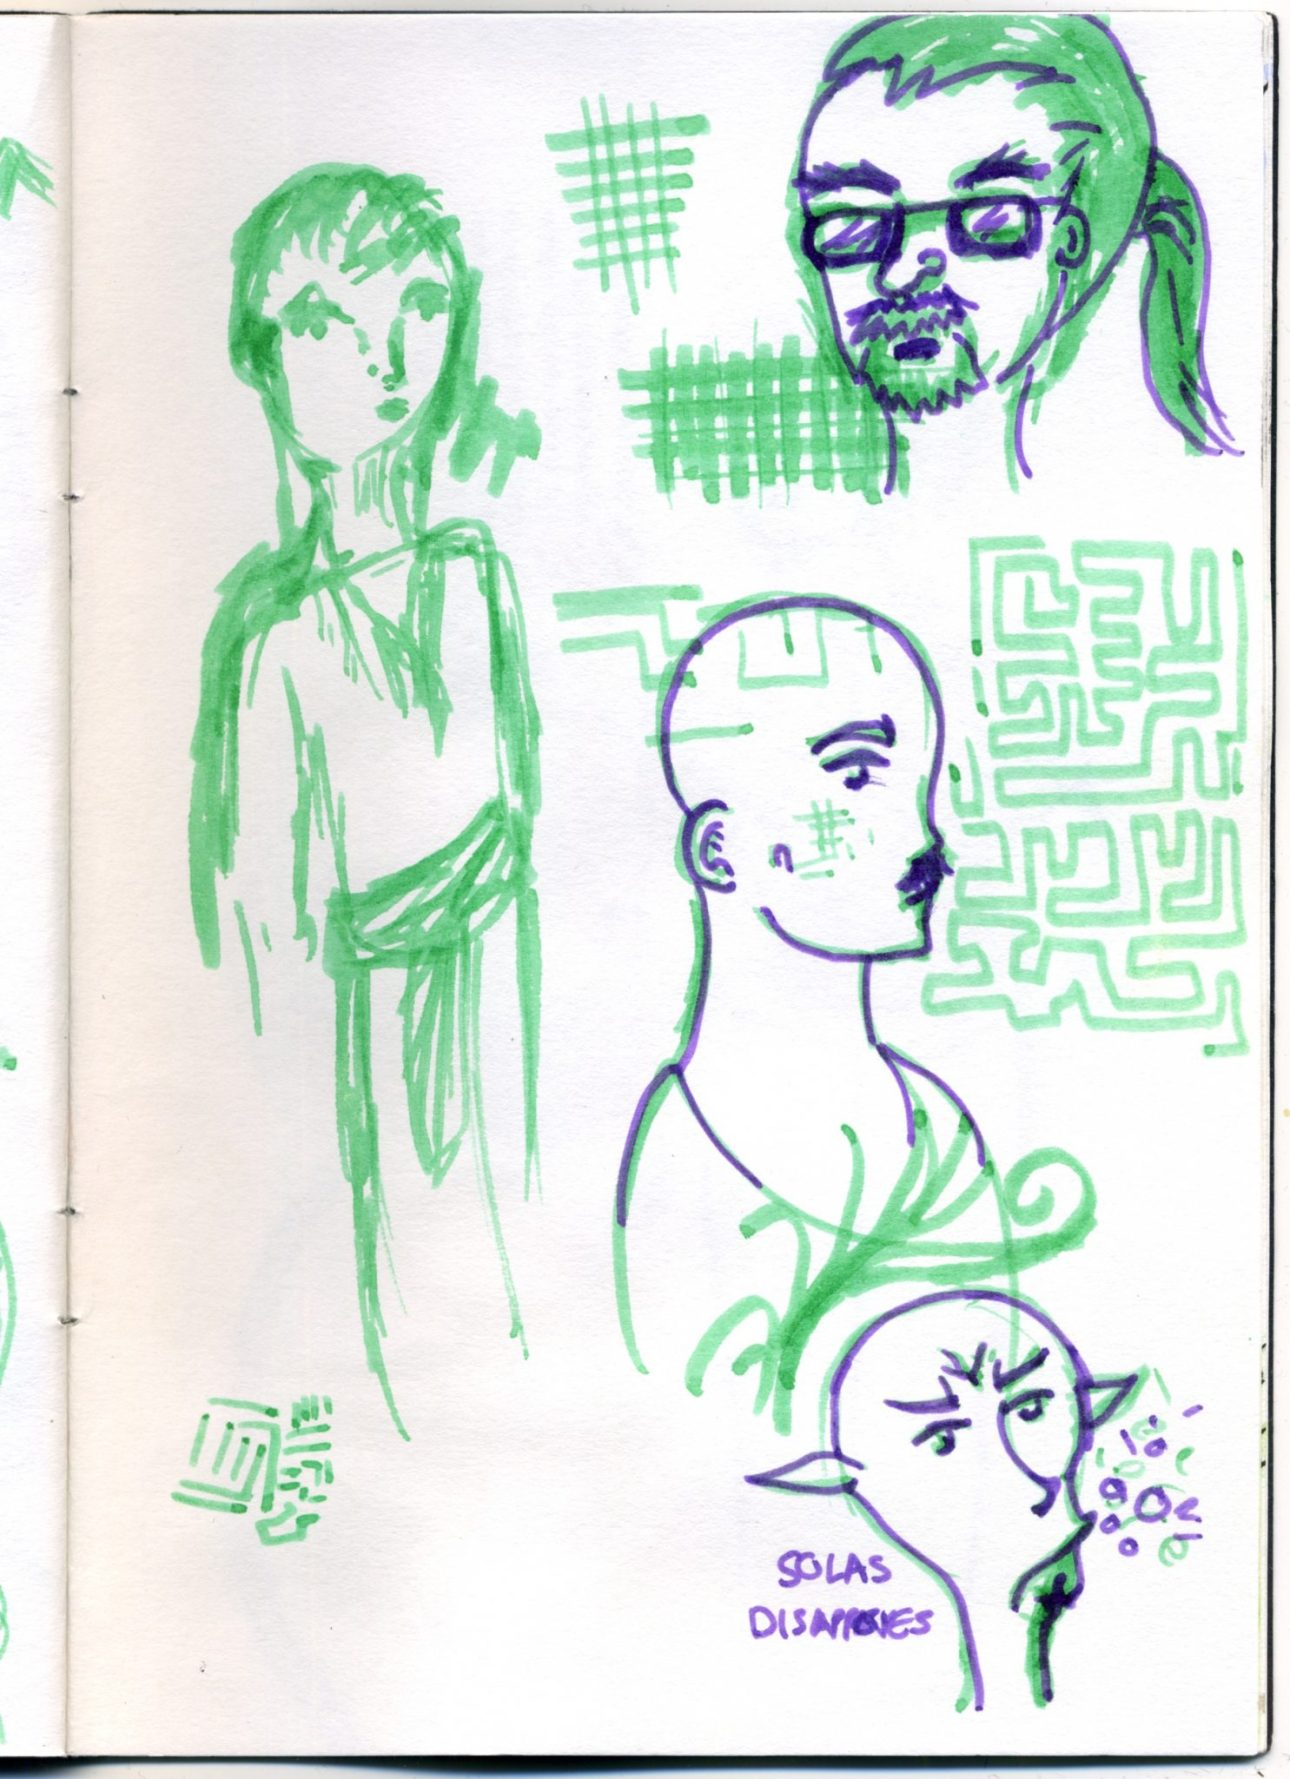 A set of pen sketches in green and blue.